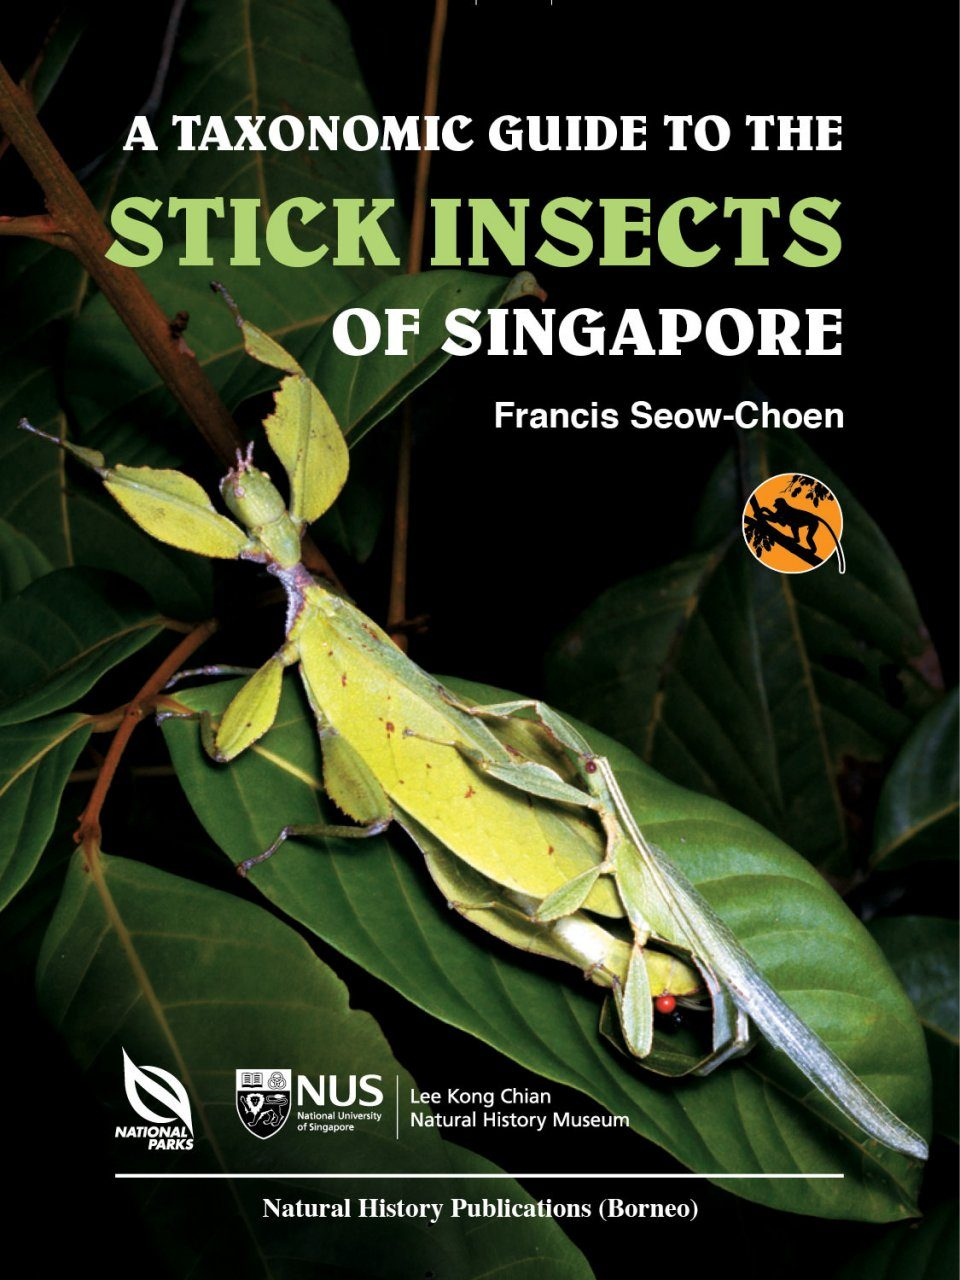 A Taxonomic Guide to the Stick Insects of Singapore